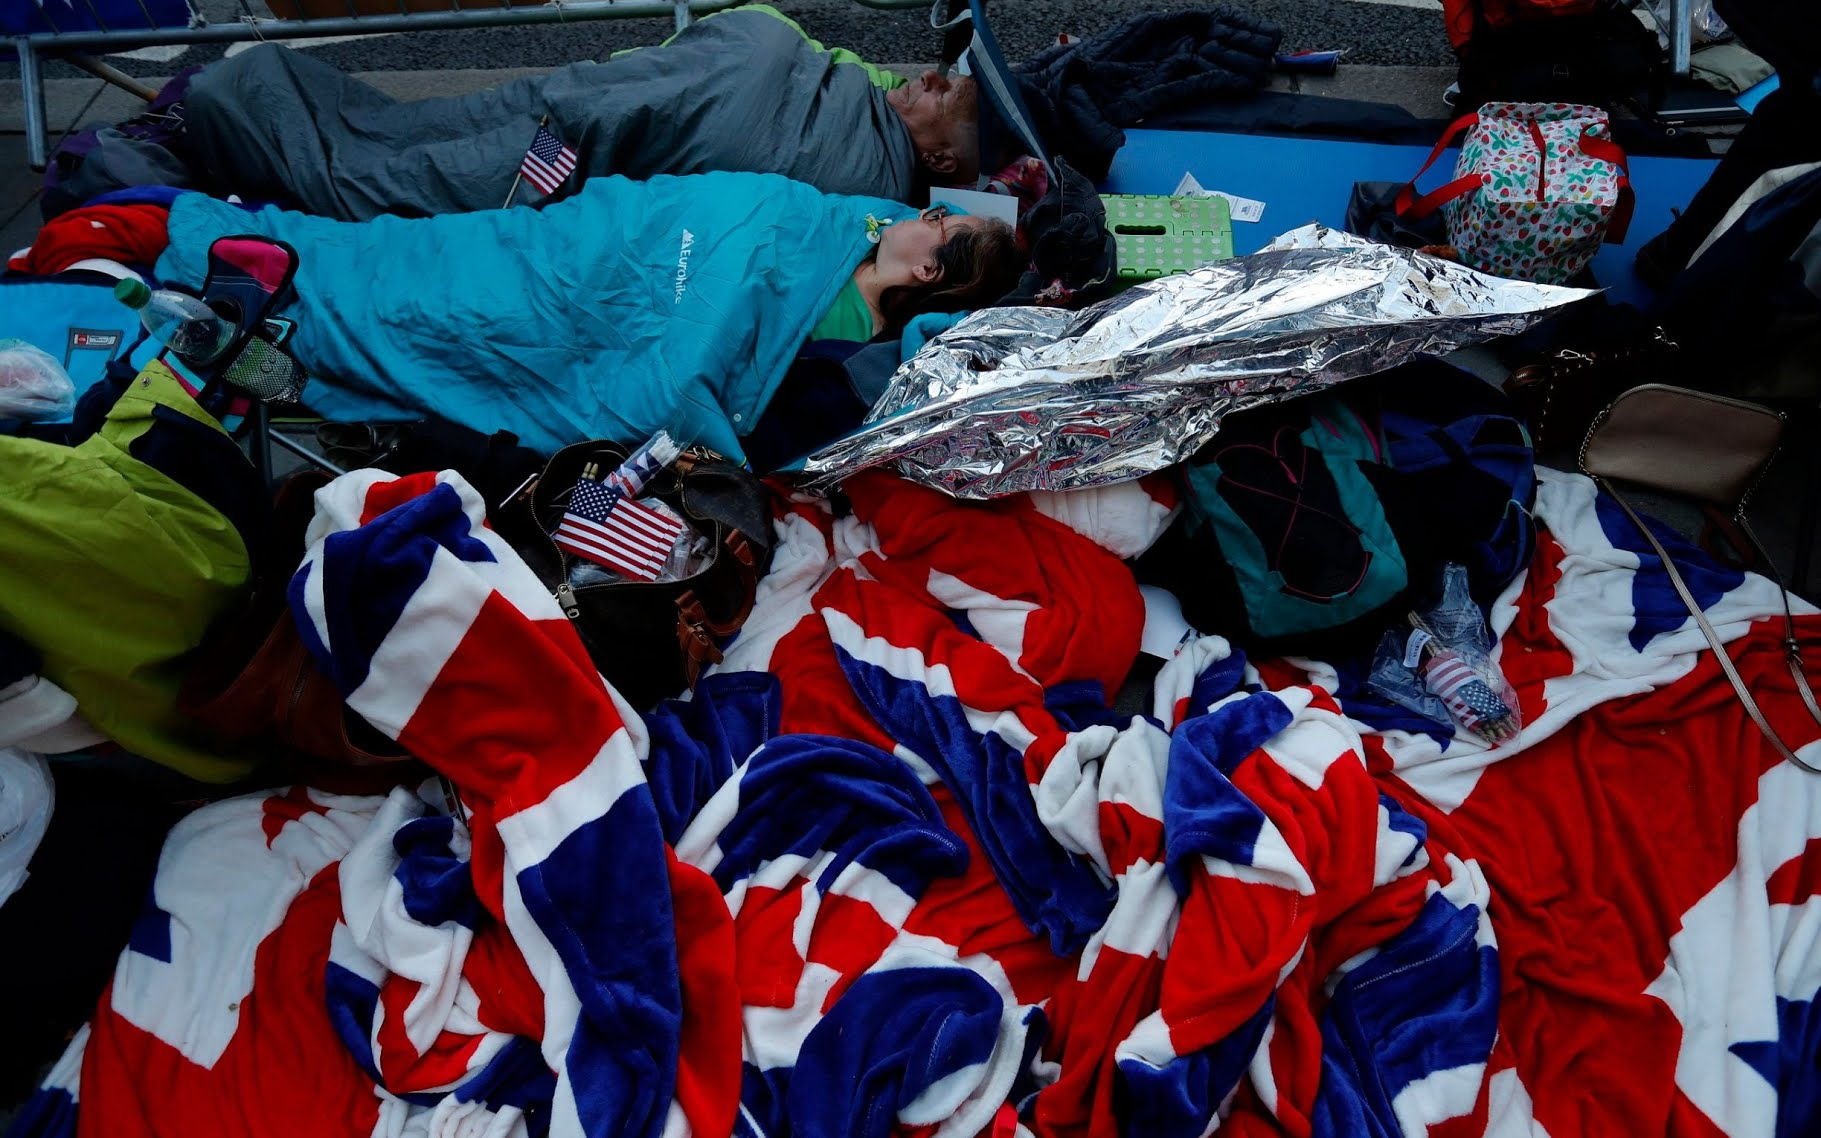 Royal fans in their sleeping bags to hold a spot at the front of barriers for the carriage procession outside Windsor Castle,